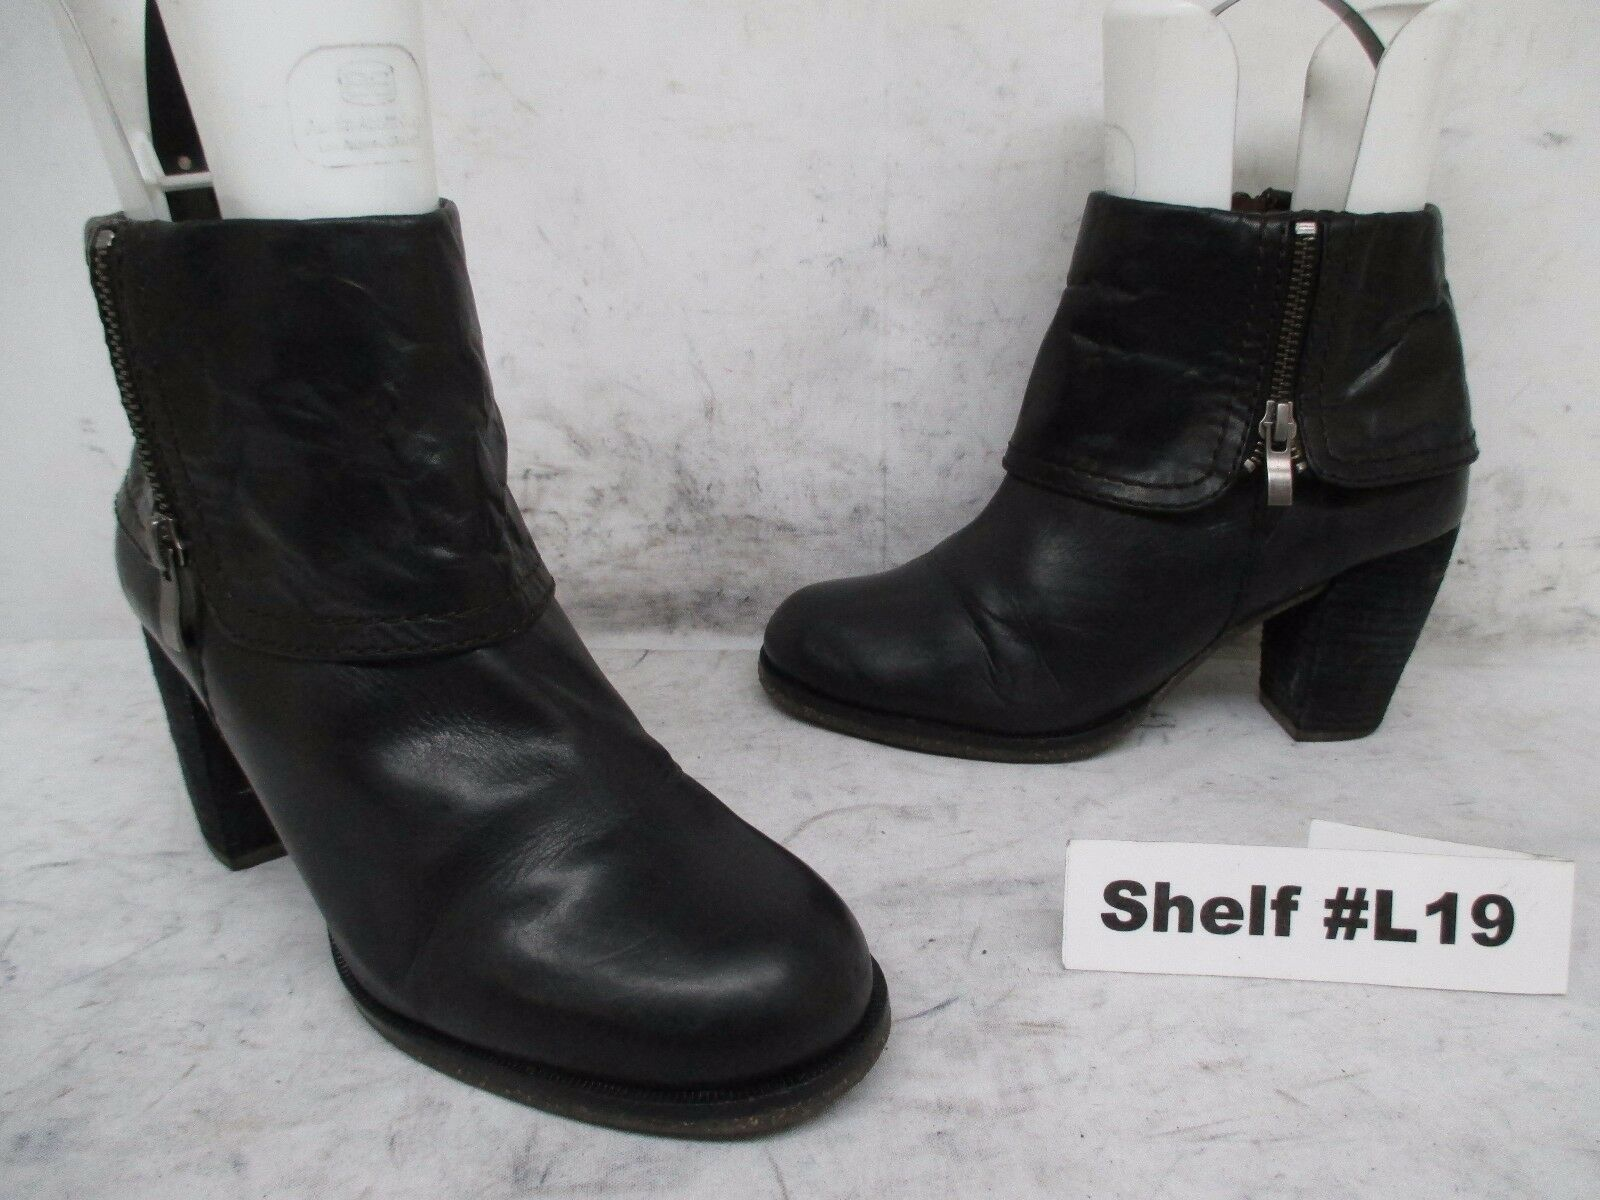 NAYA Black Leather Zip Fashion Ankle Heel Boots Size 6.5 M Style Lark